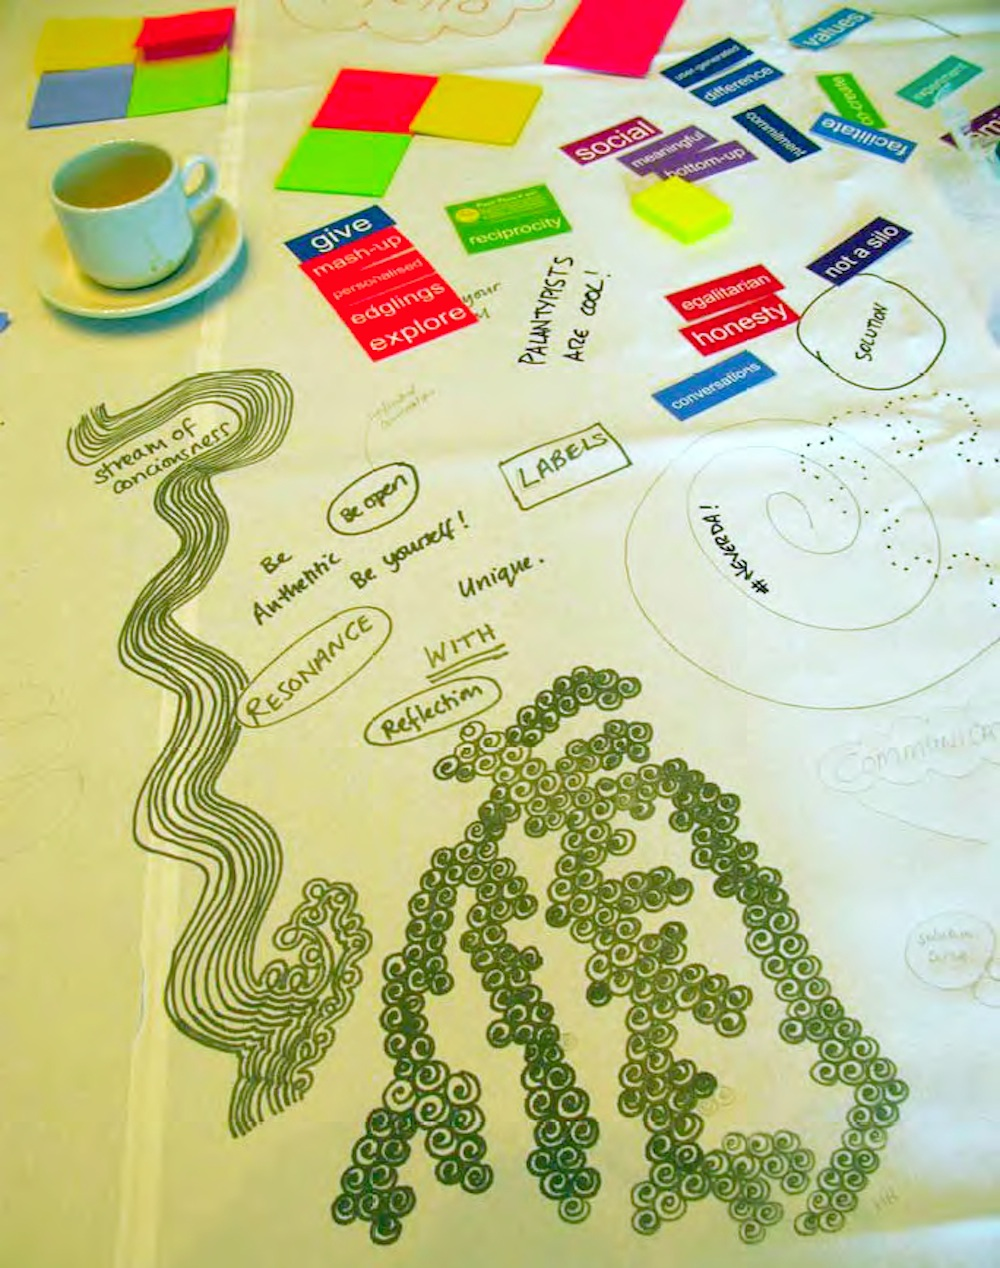 photo of a table cloth with, drawings ideas and scribbles all over it